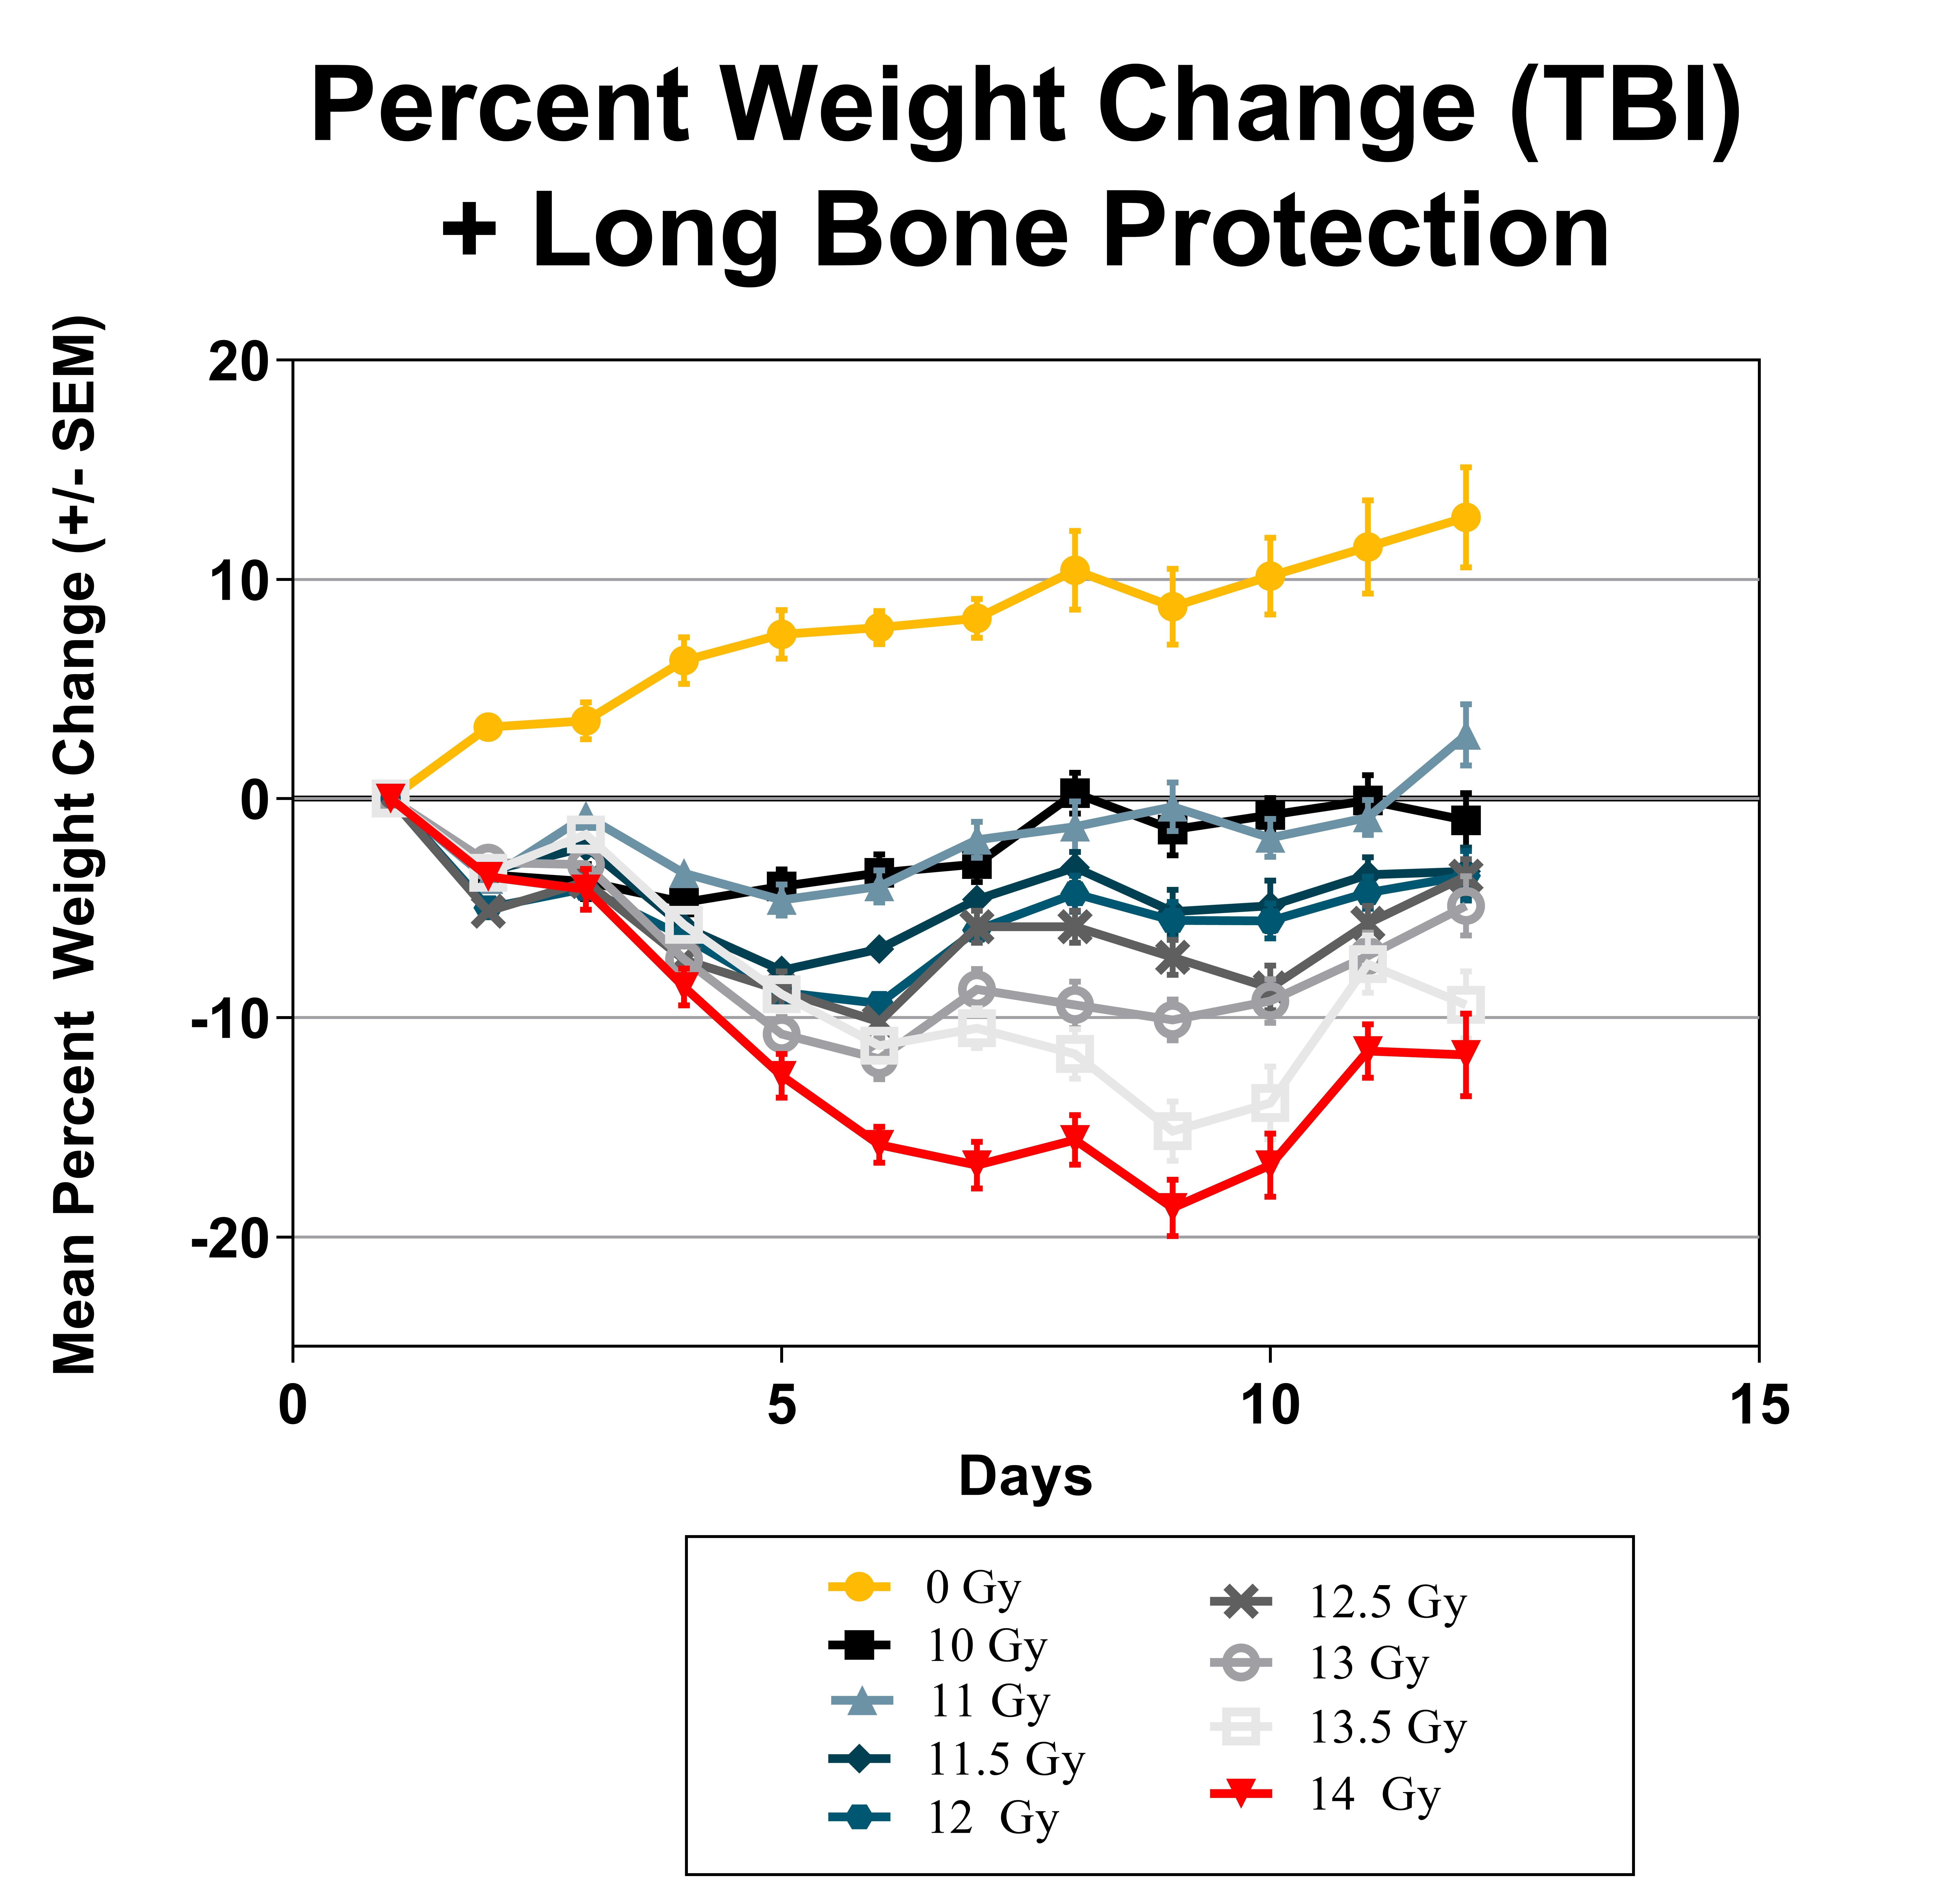 Percent Weight Change (TBI + Long Bone Protection)